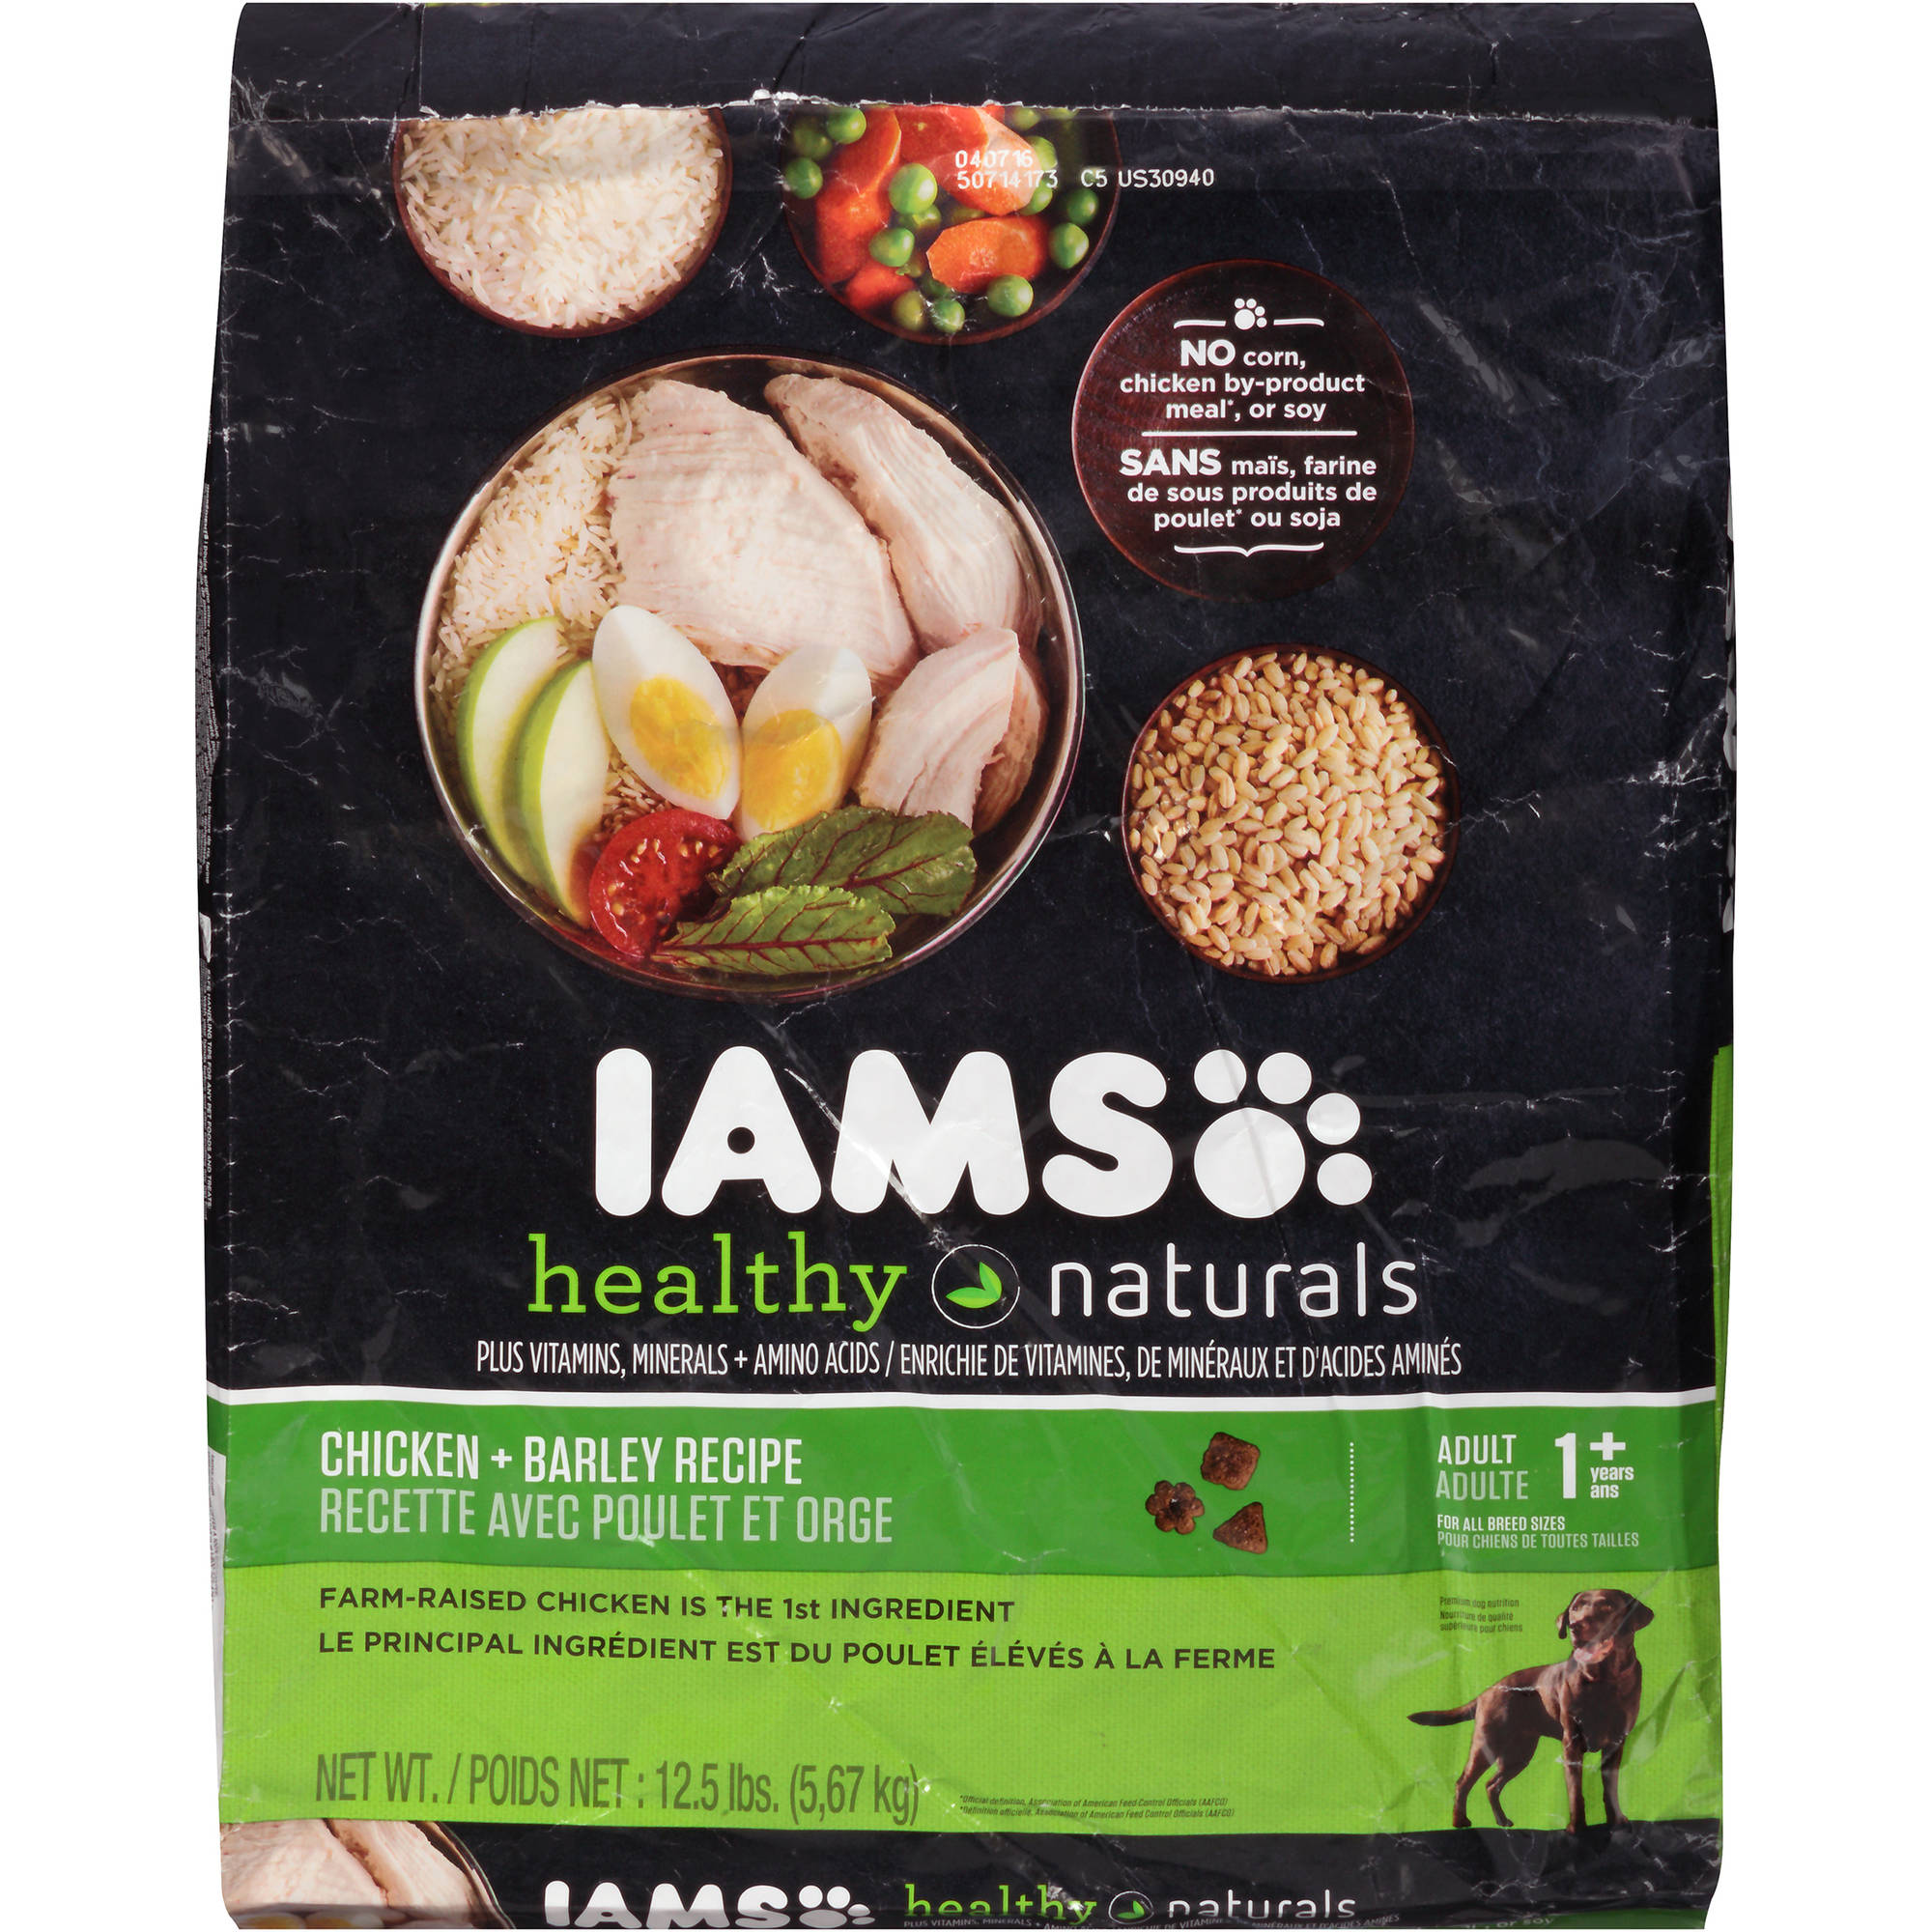 Iams Healthy Naturals Chicken + Barley Recipe Adult 1+ Years Dog Food 12.5 lb. Bag